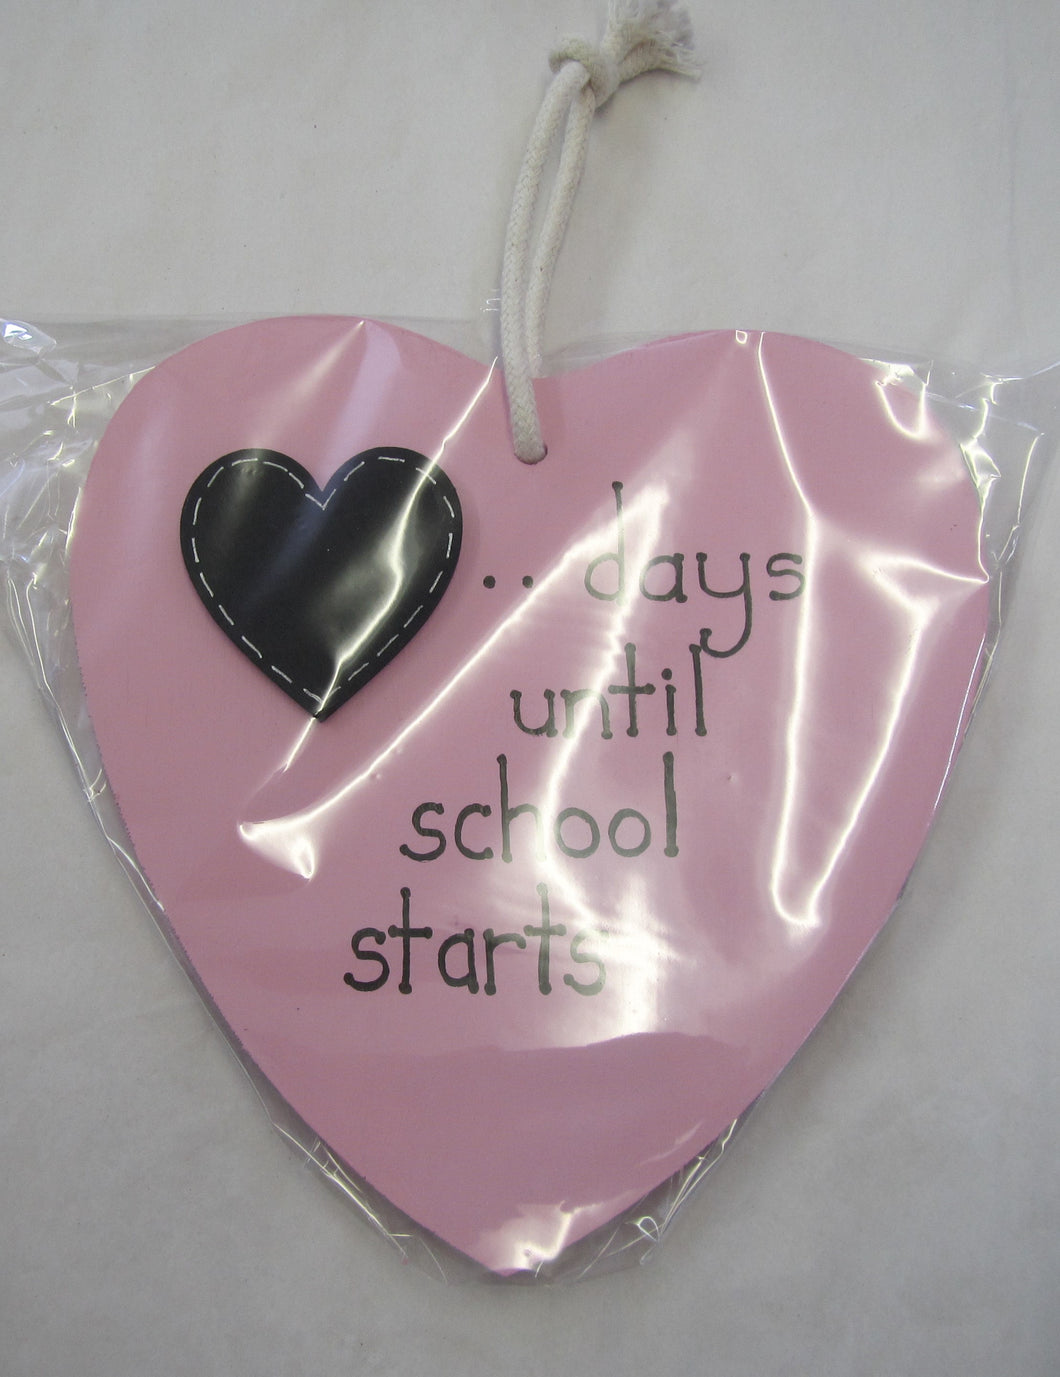 Beautiful handcrafted heart - days until school starts